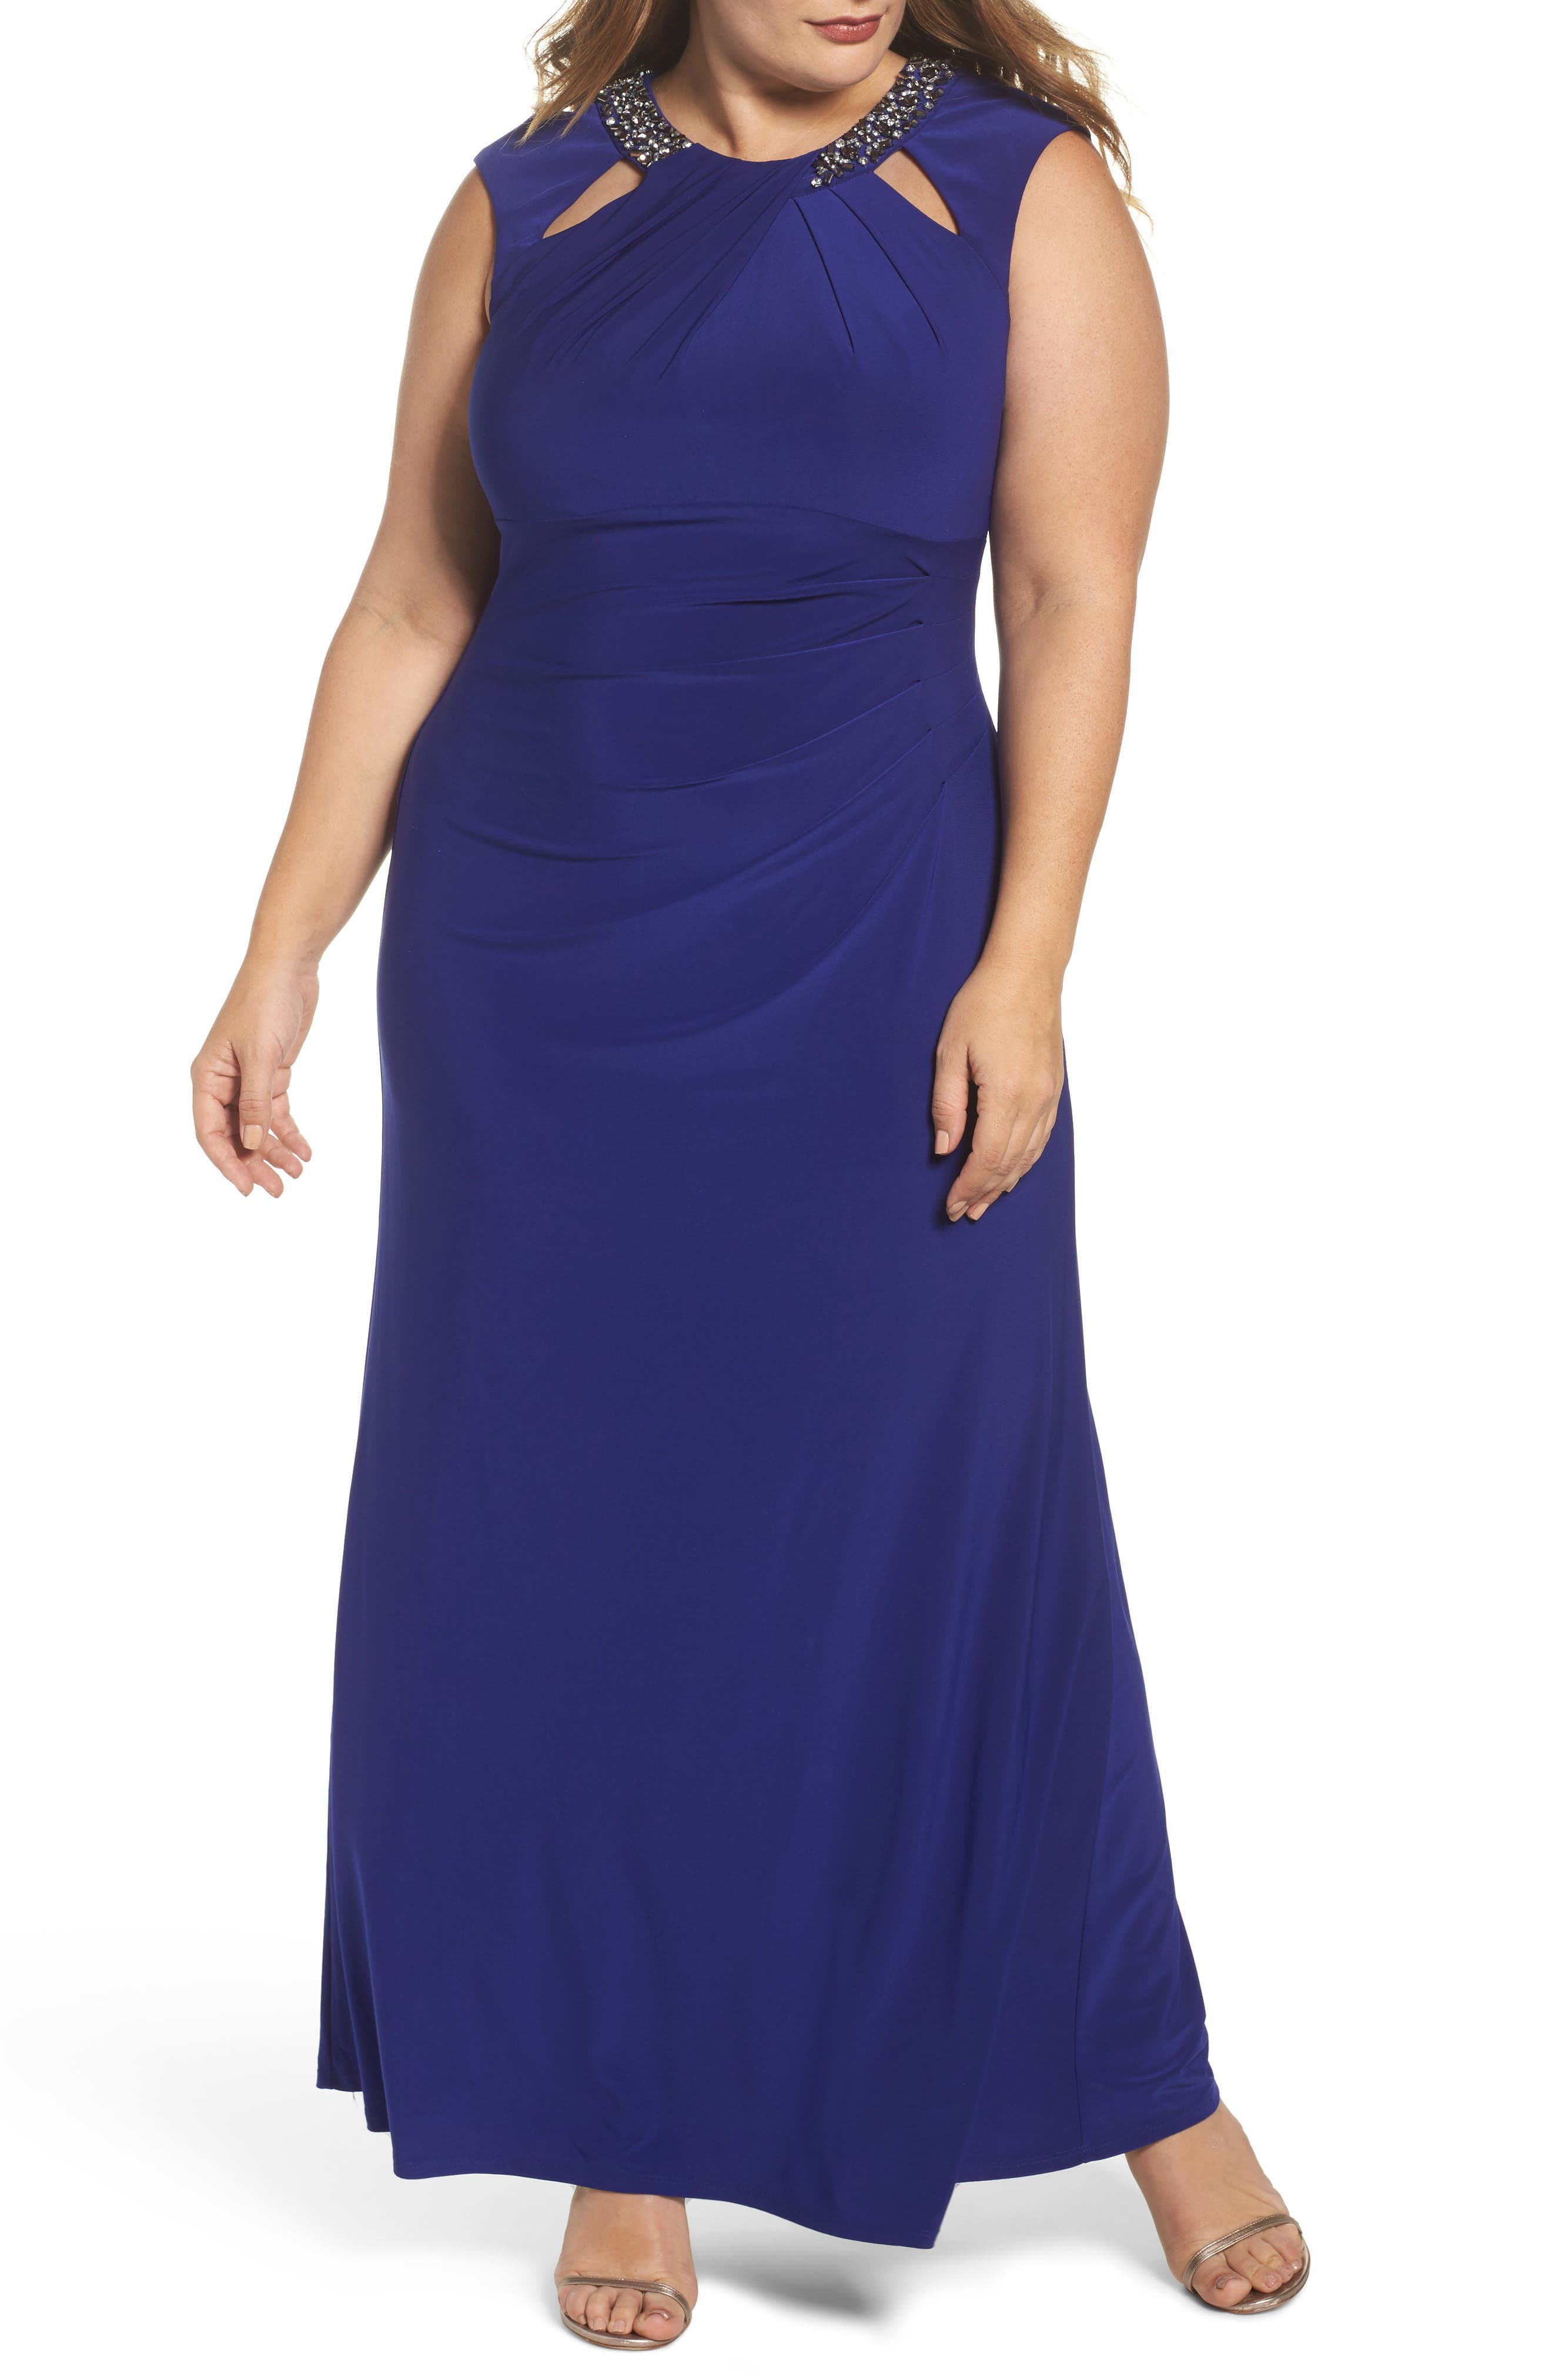 Beaded Neck Ruched Gown,                             Main thumbnail 1, color,                             430